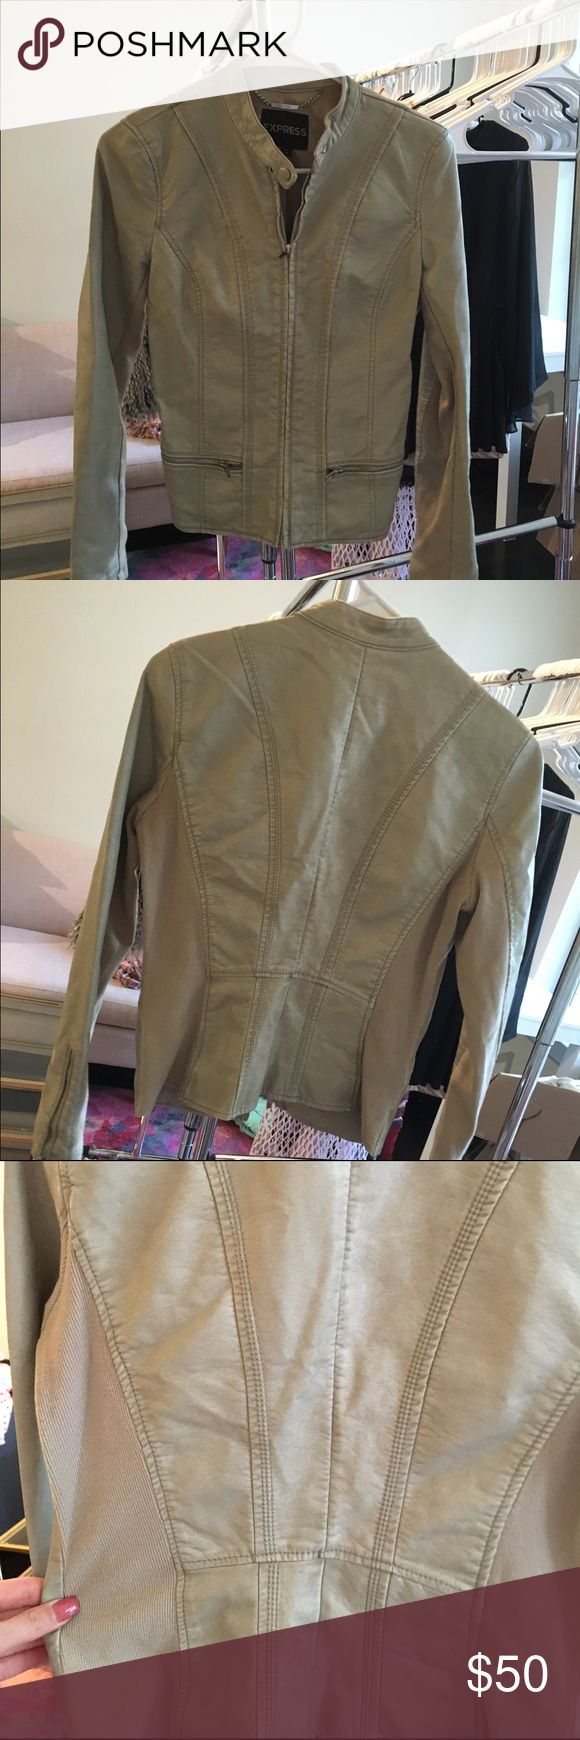 Express leather jacket Light tan leather jacket from Express. Worn a few times. 3rd picture above shows the true color better. Great condition! Express Jackets & Coats